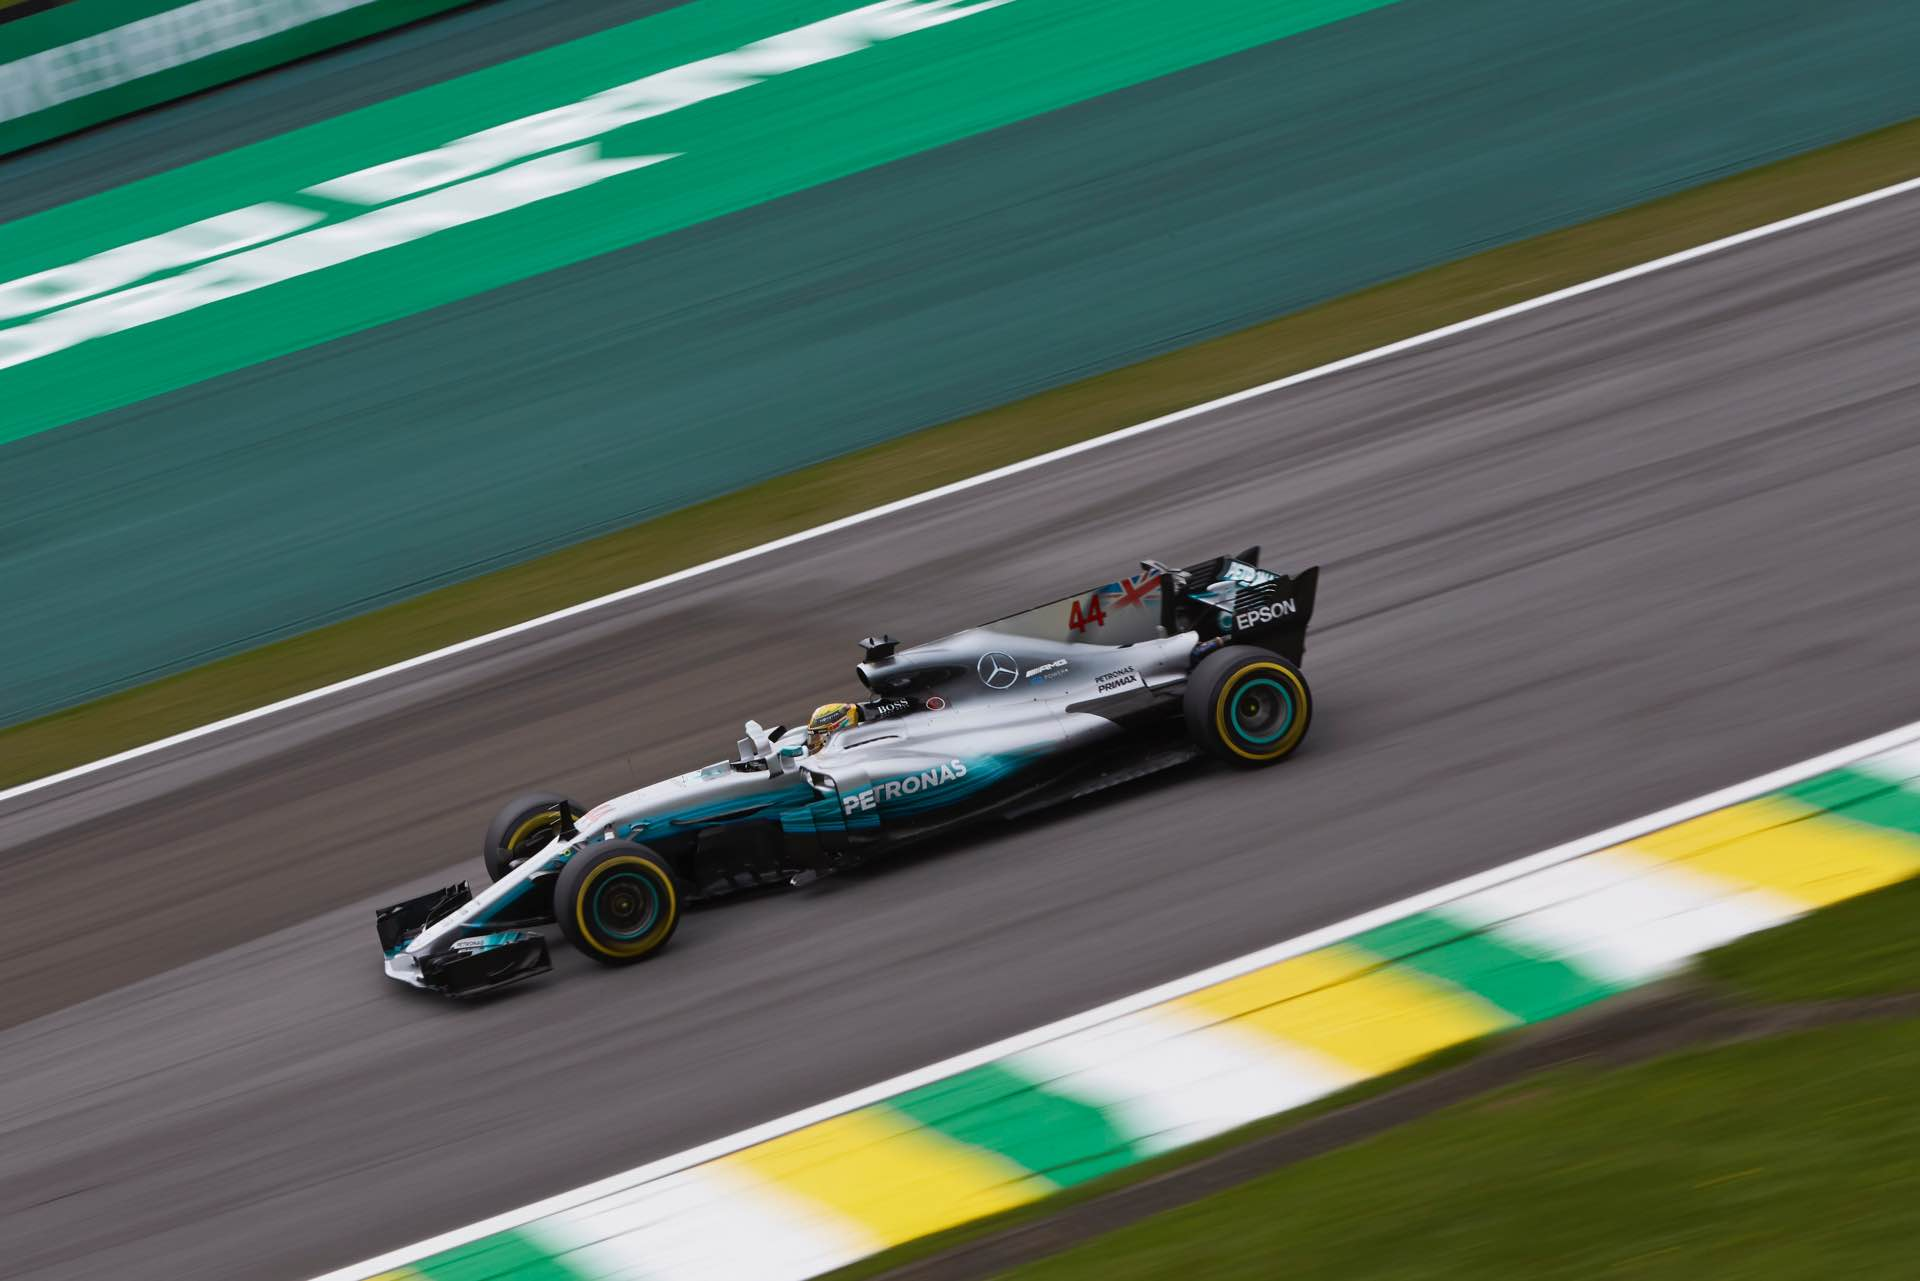 2017 Brazilian Grand Prix, Saturday – Steve Etherington